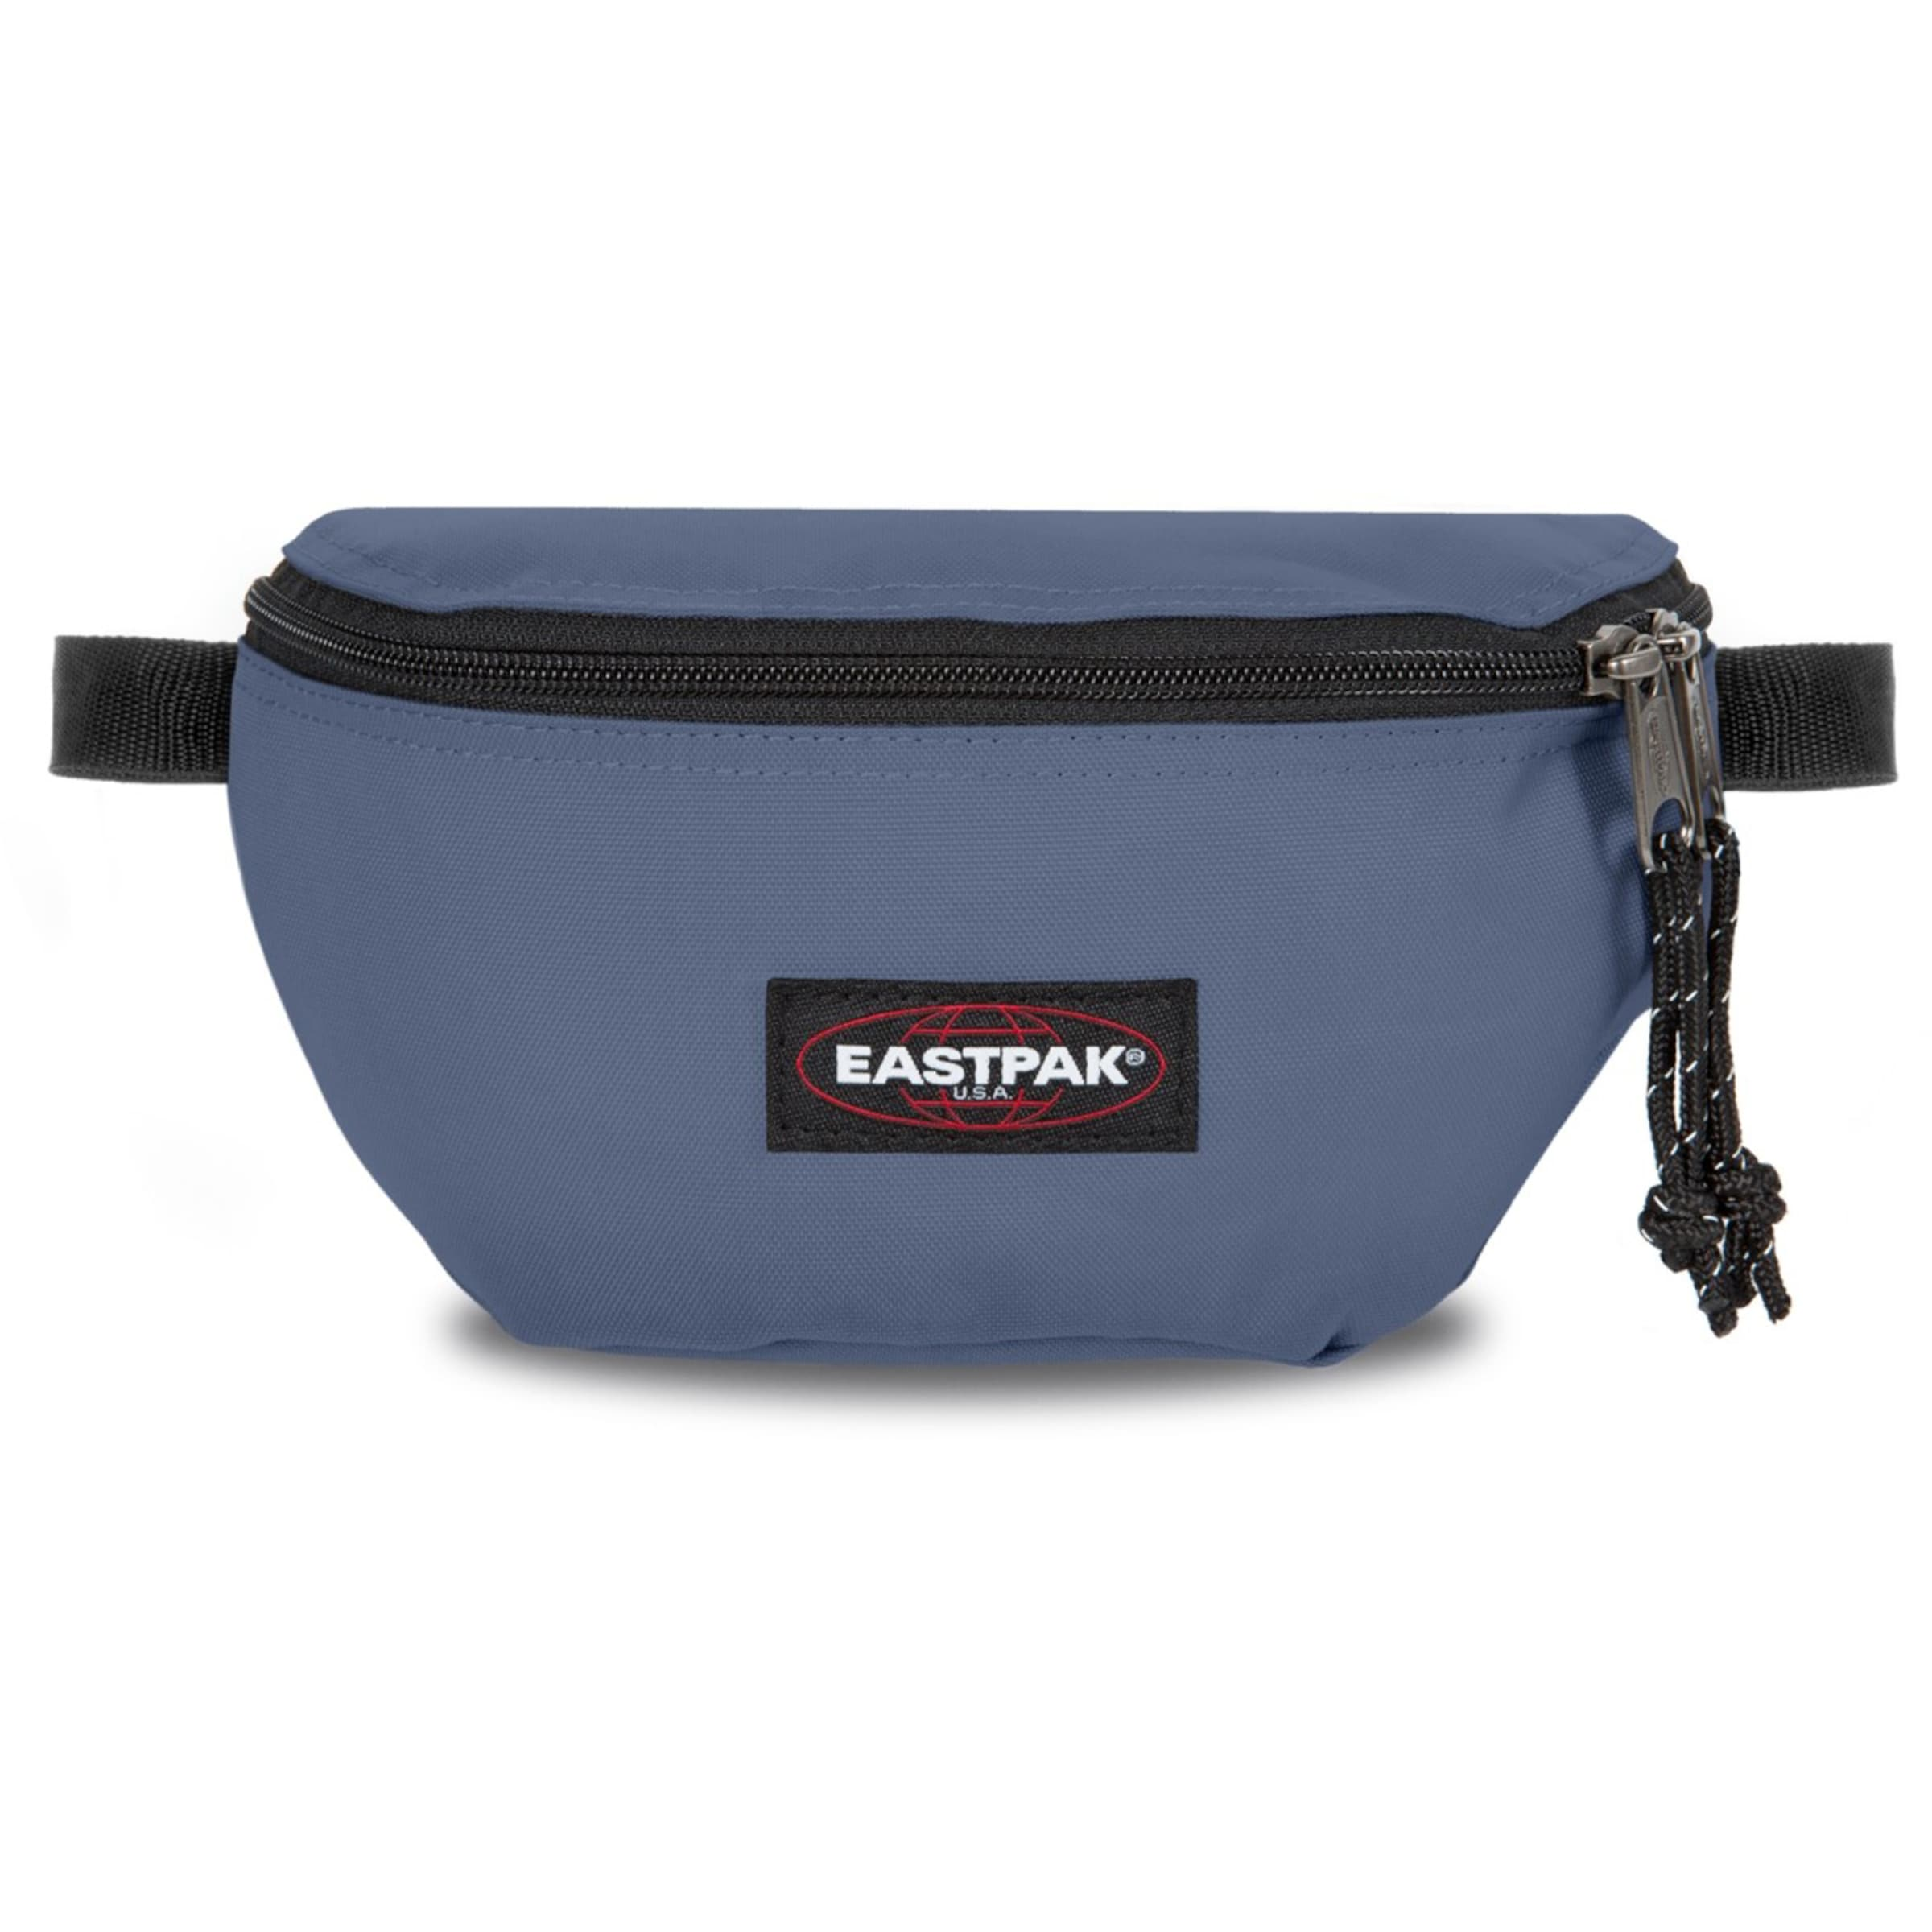 EASTPAK EASTPAK G眉rteltasche Authentic 17 cm Collection III 23 Authentic Springer 5OnqPHd5w